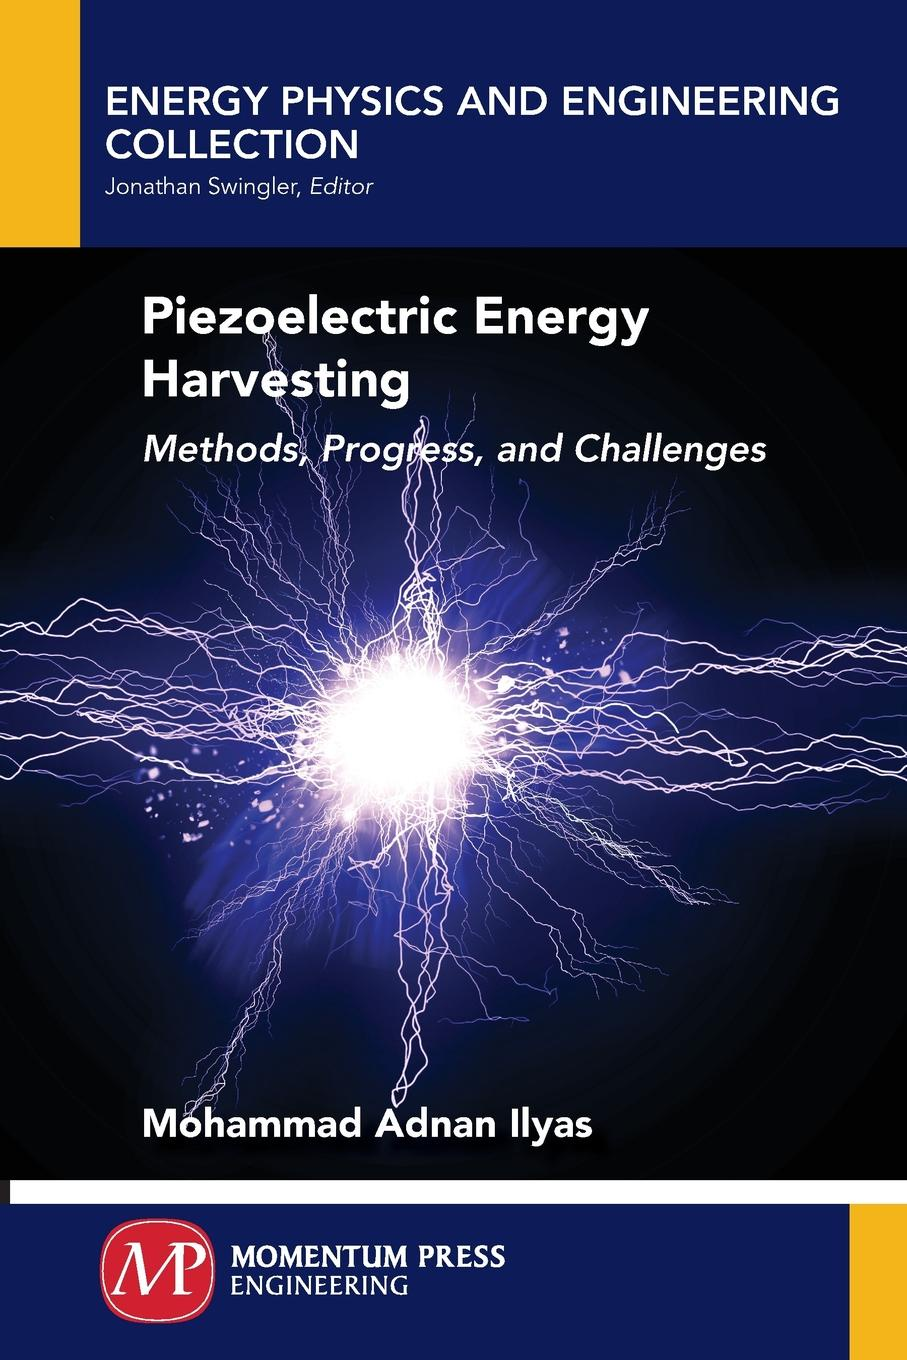 Mohammad Adnan Ilyas Piezoelectric Energy Harvesting. Methods, Progress, and Challenges edgar lara curzio materials challenges in alternative and renewable energy